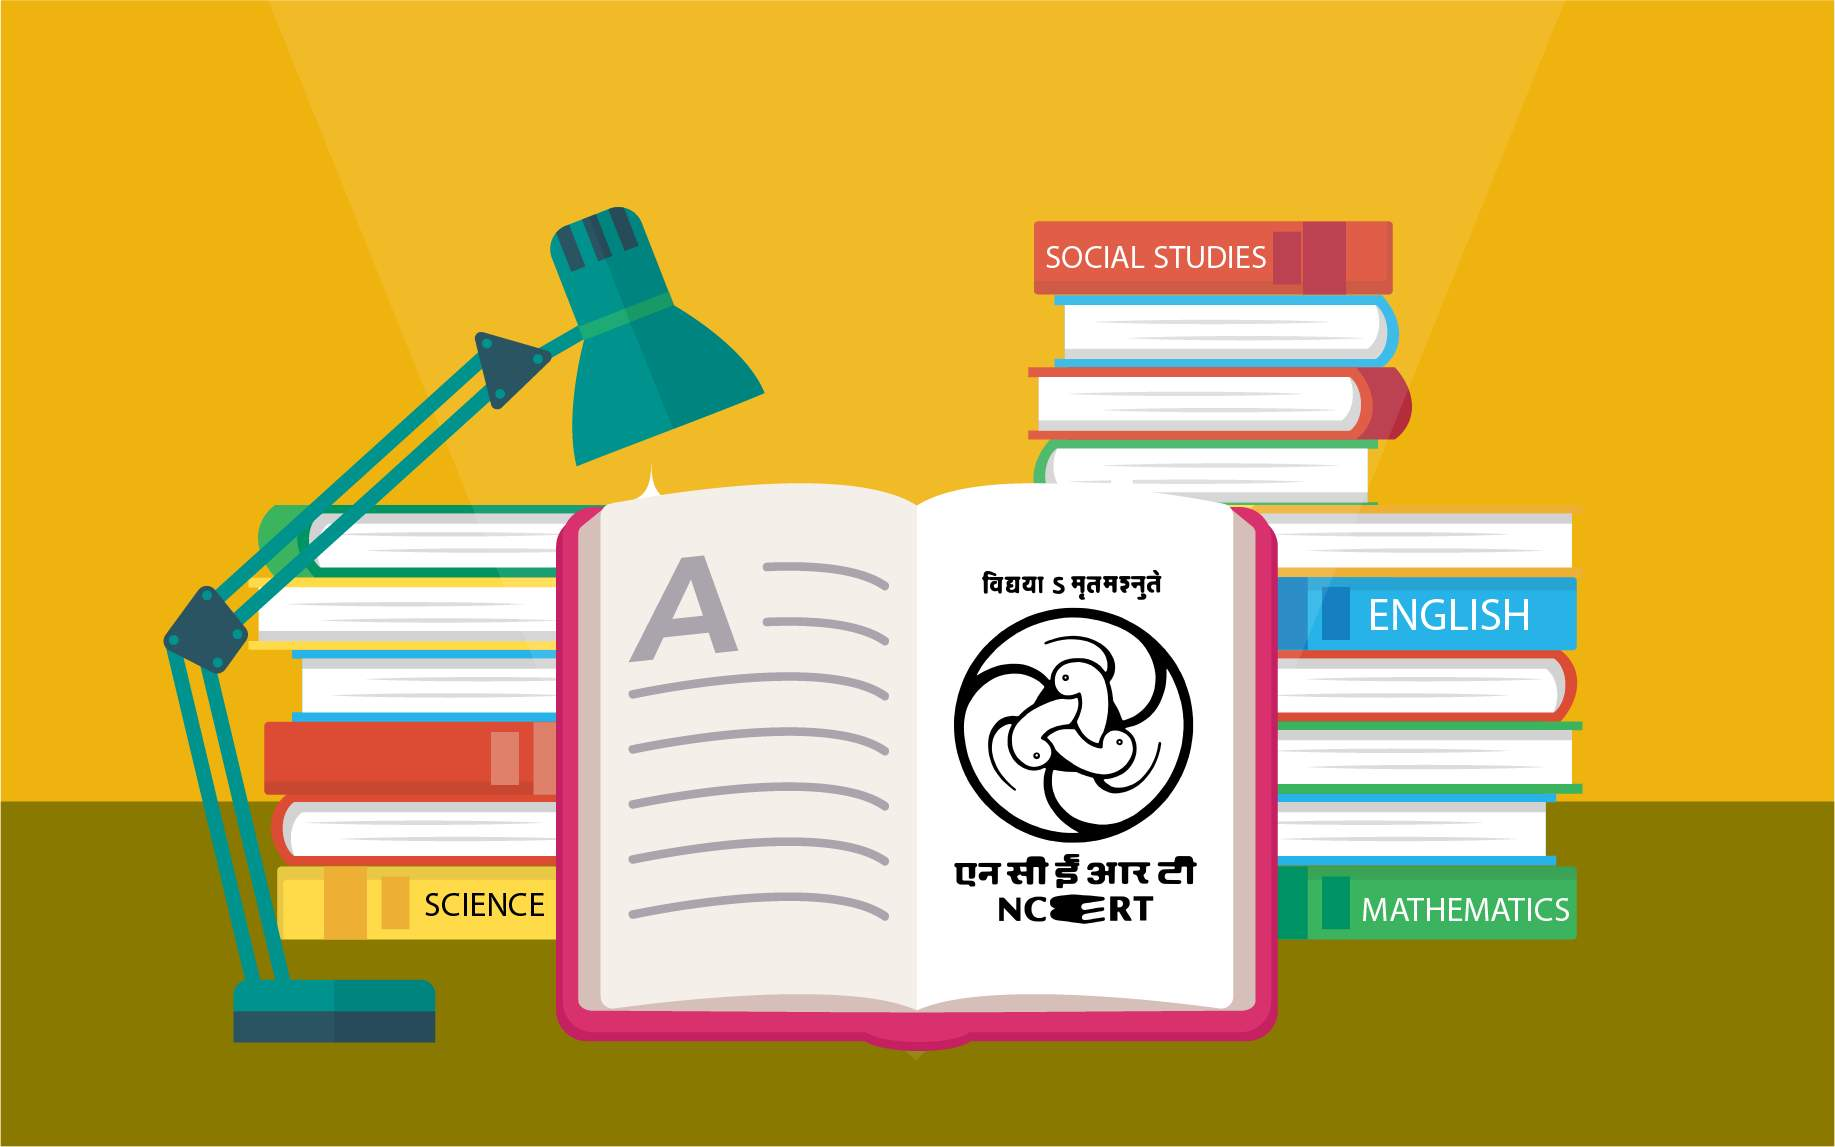 Benefits of NCERT Books for CBSE Students